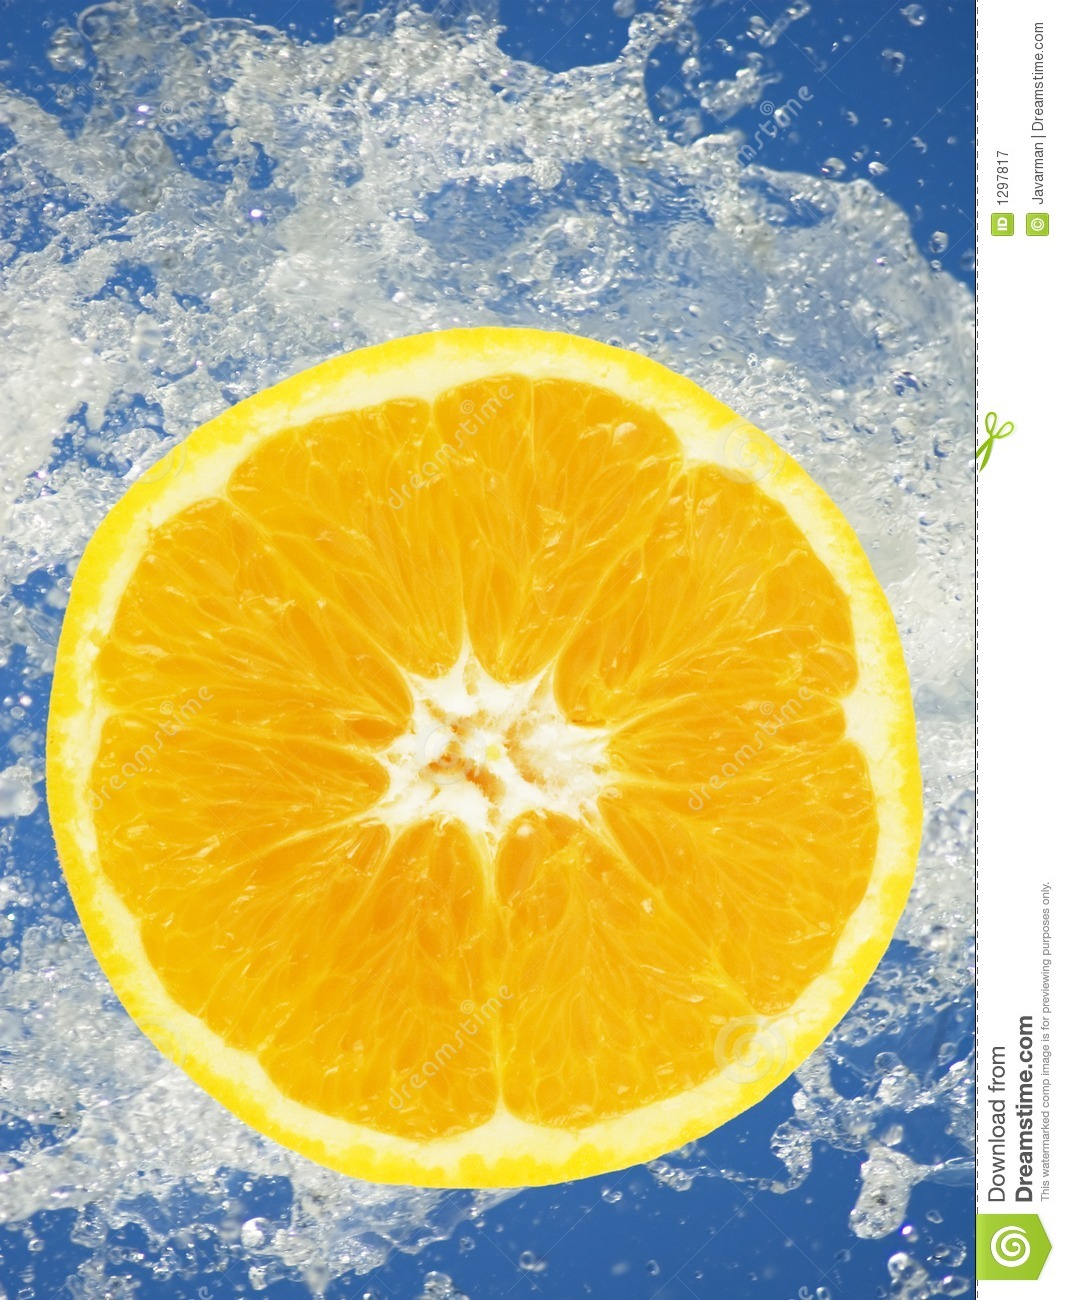 Mar 20,  · Steps 1 & 2: Wash and slice oranges no wider than 1/8 inch thick. I used Mandarin Oranges today. Steps 3, 4 & 5: Boil, cool & simmer orange slices. Step 6: Drain orange slices. Step 7: Place orange slices on a cooling rack to cool and dry.5/5(12).